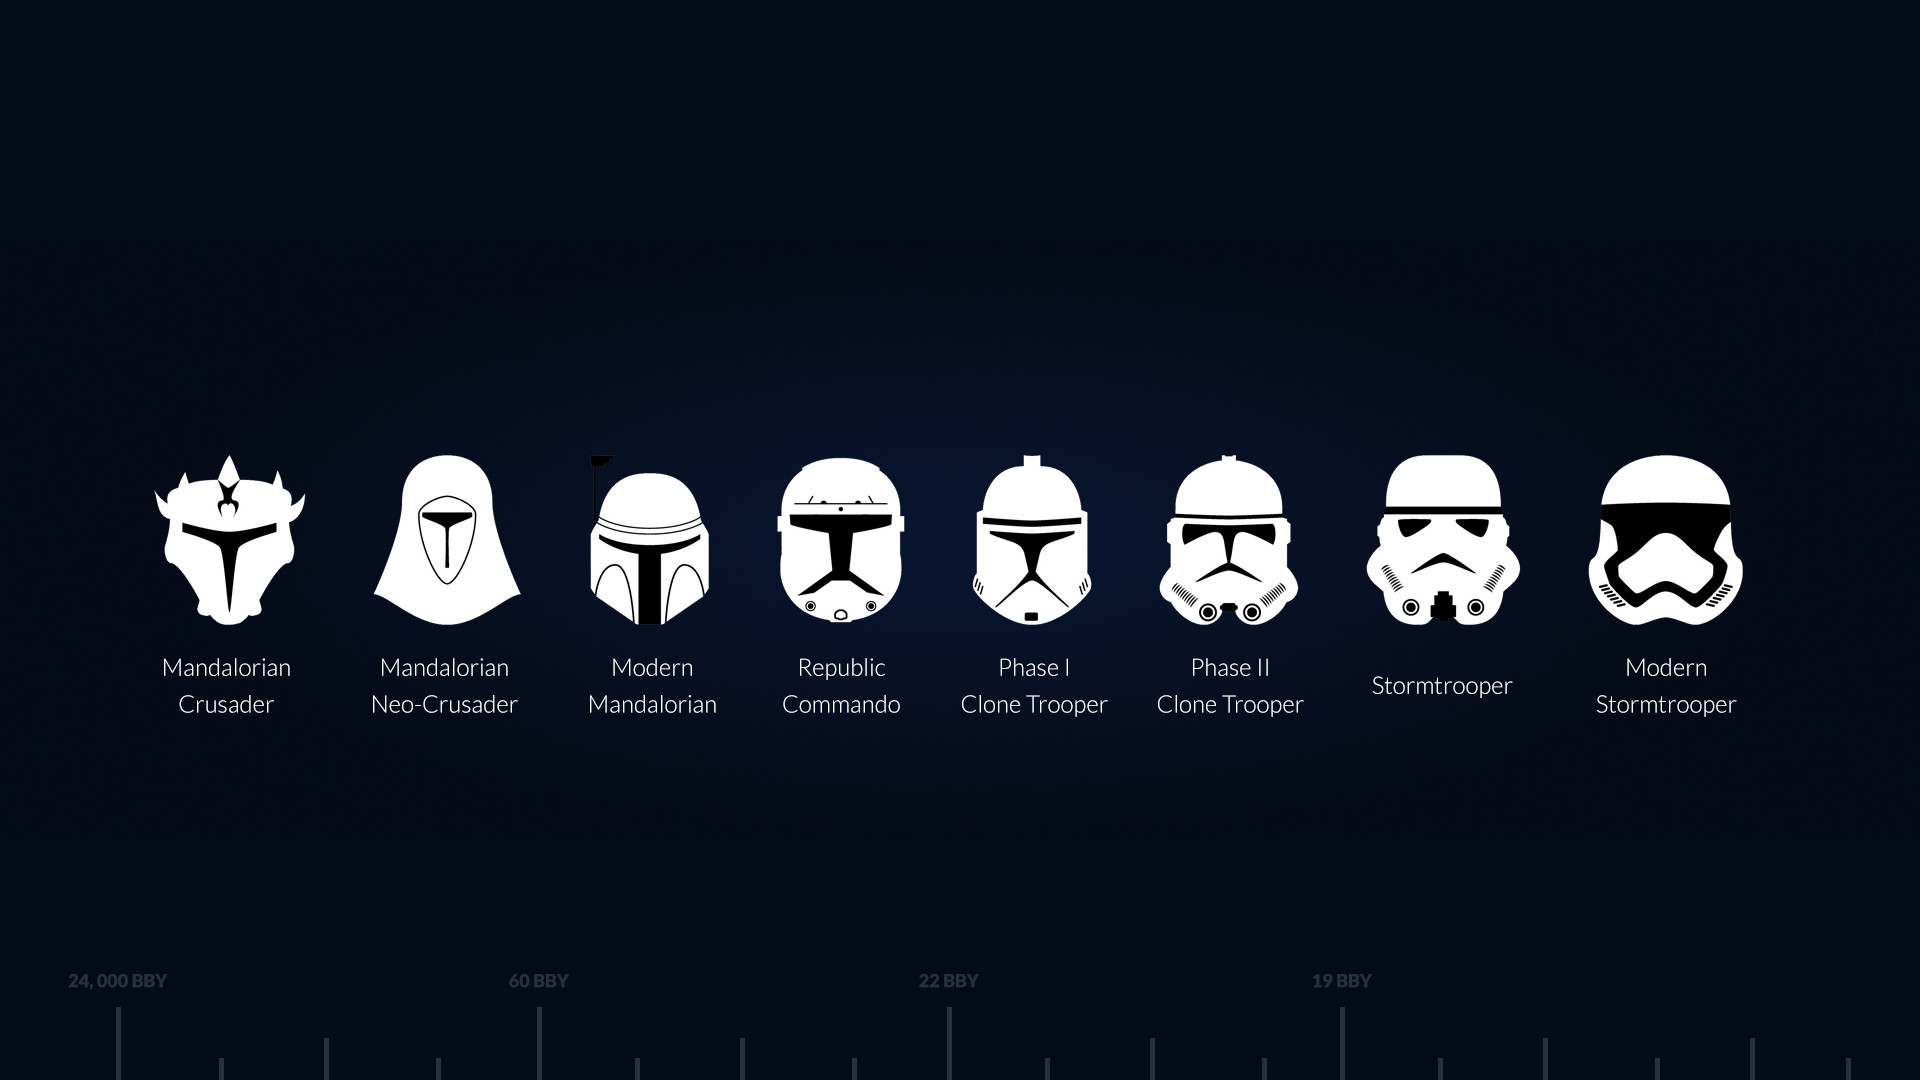 stormtrooper evolution hbd chick 1920x1080